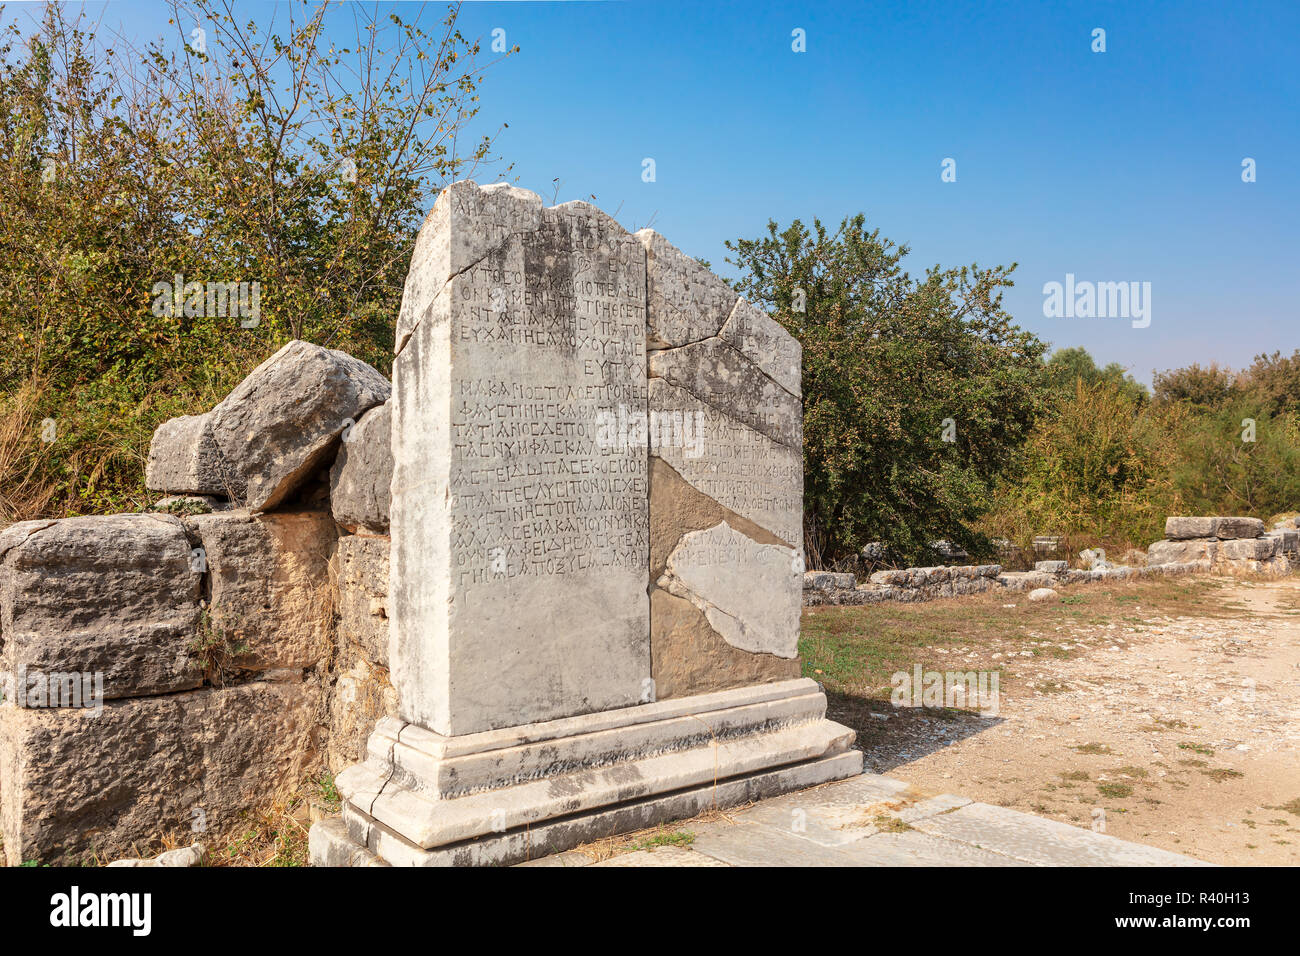 Detail of marble column with ancient Greek scripture and plinth at historic archaeological site of Miletus at Aydin province, Turkey. - Stock Image